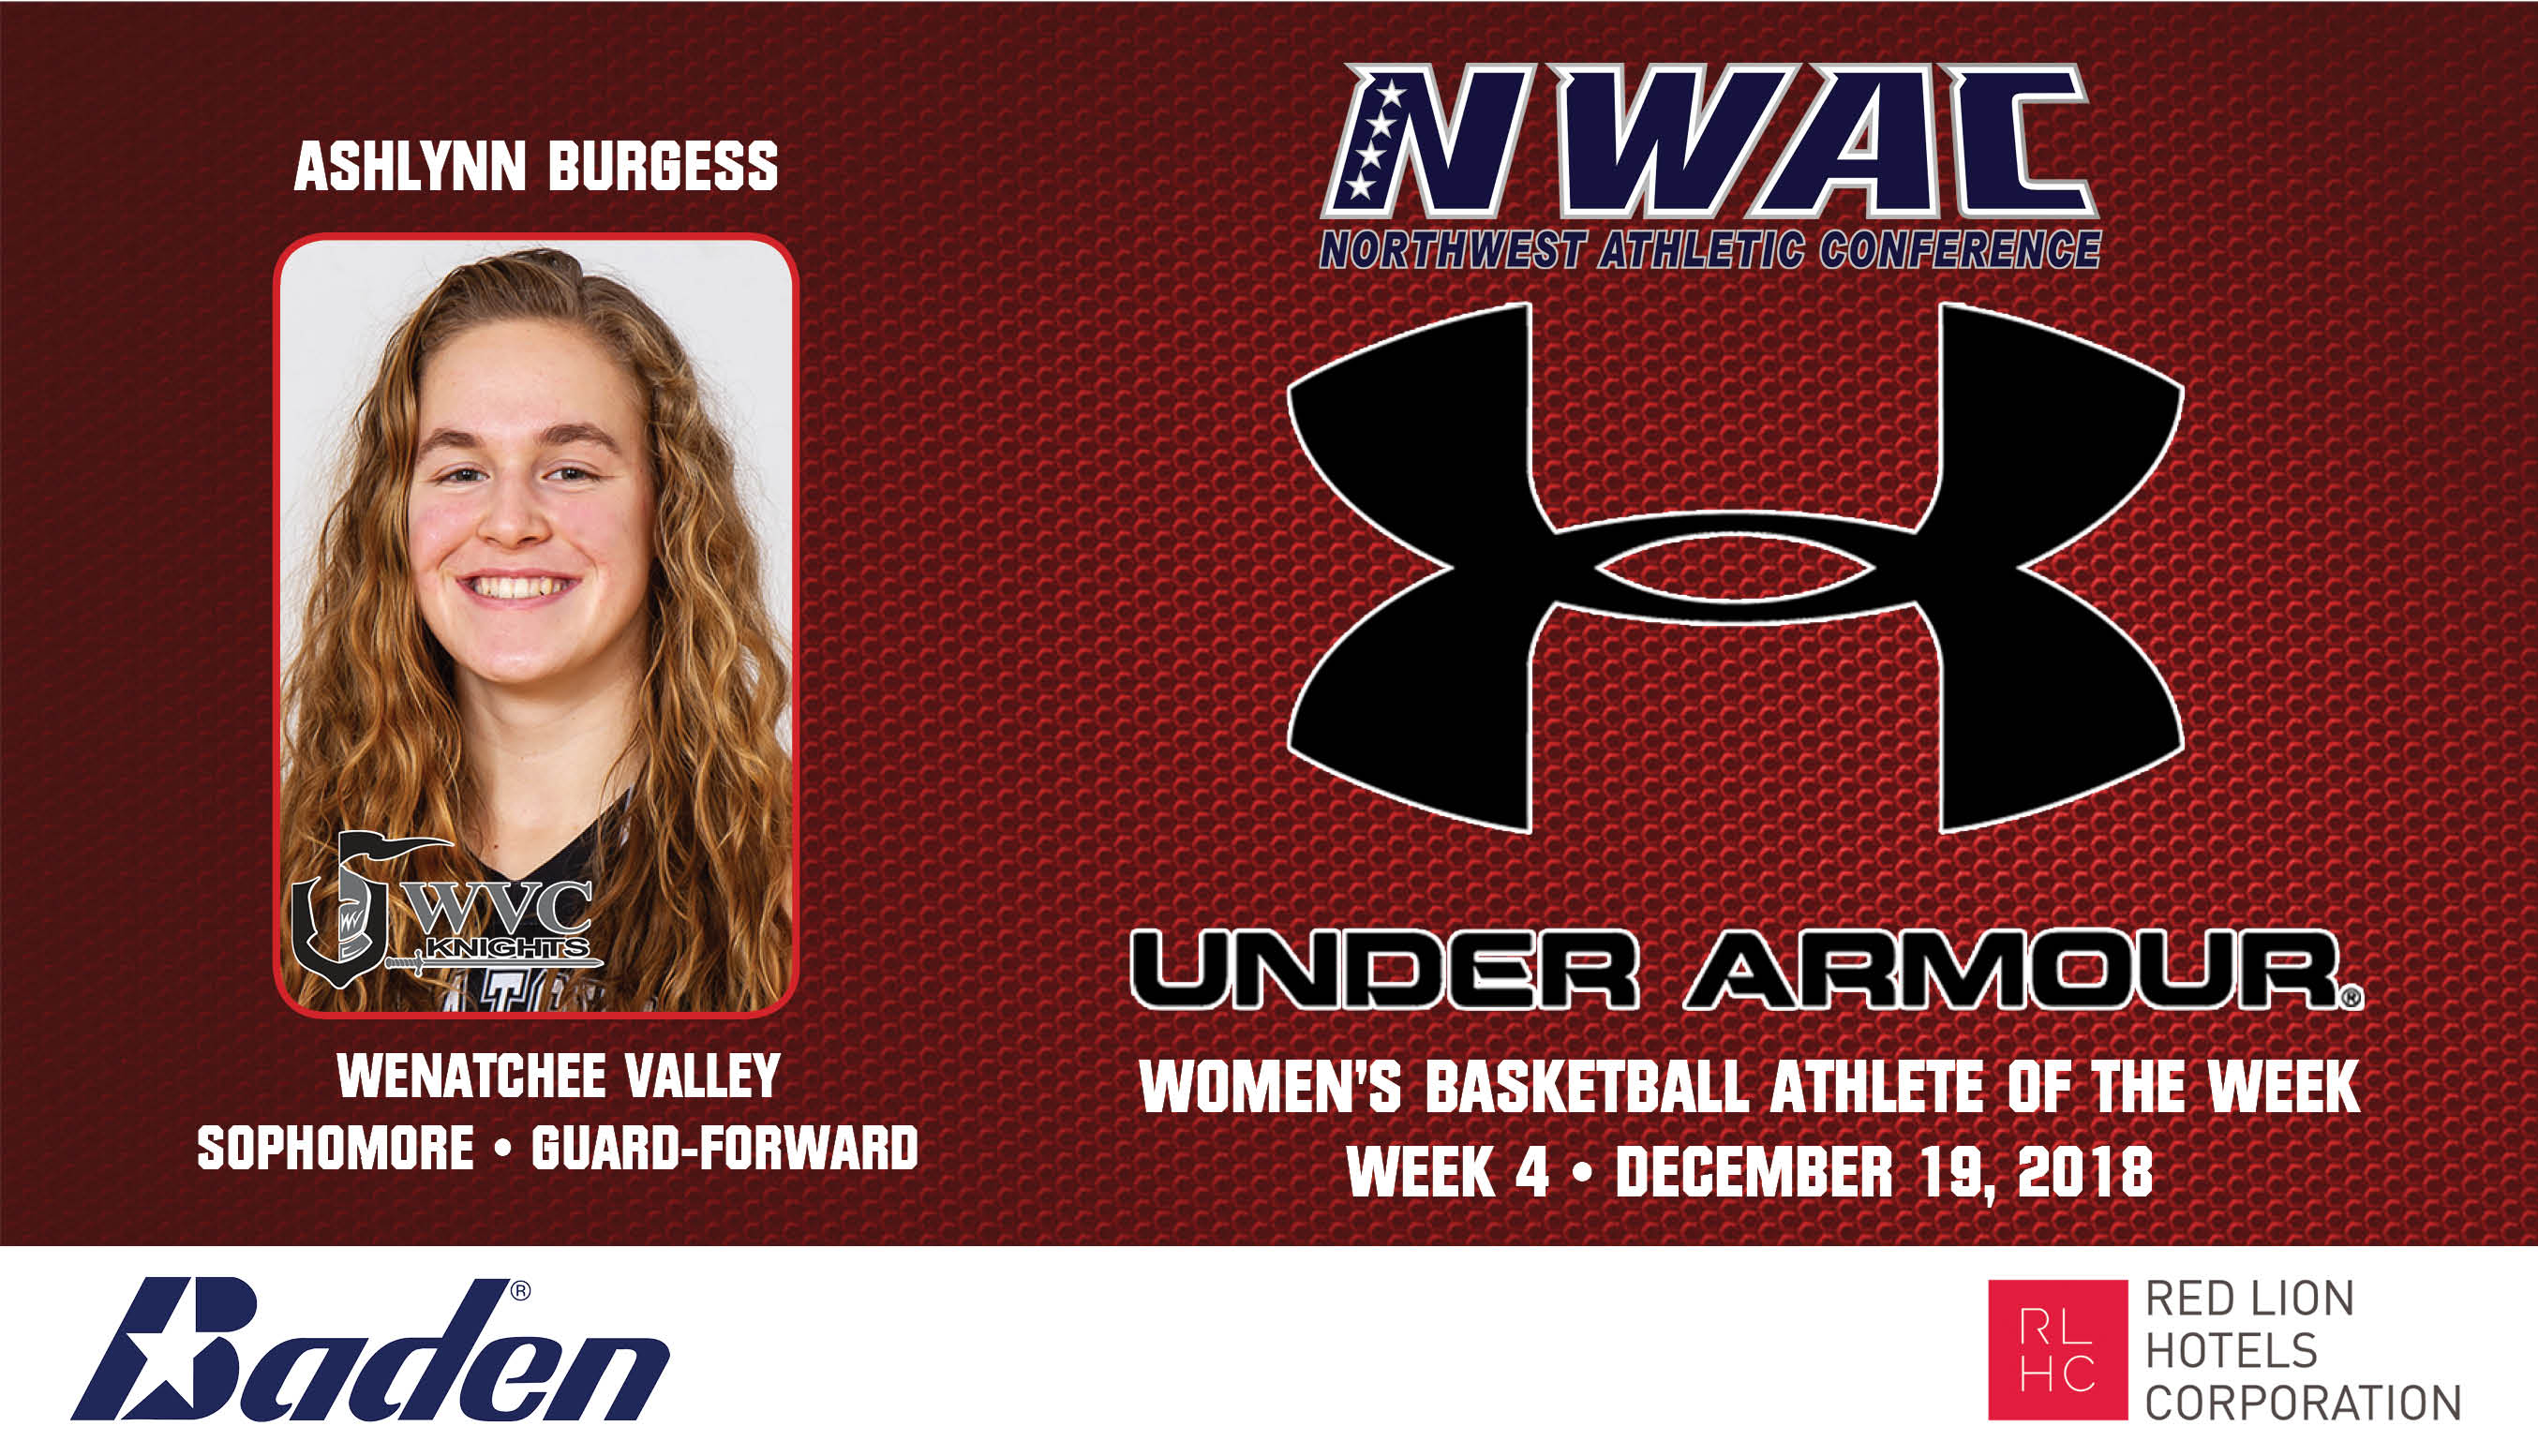 Ashlynn Burgess Under Armour photo